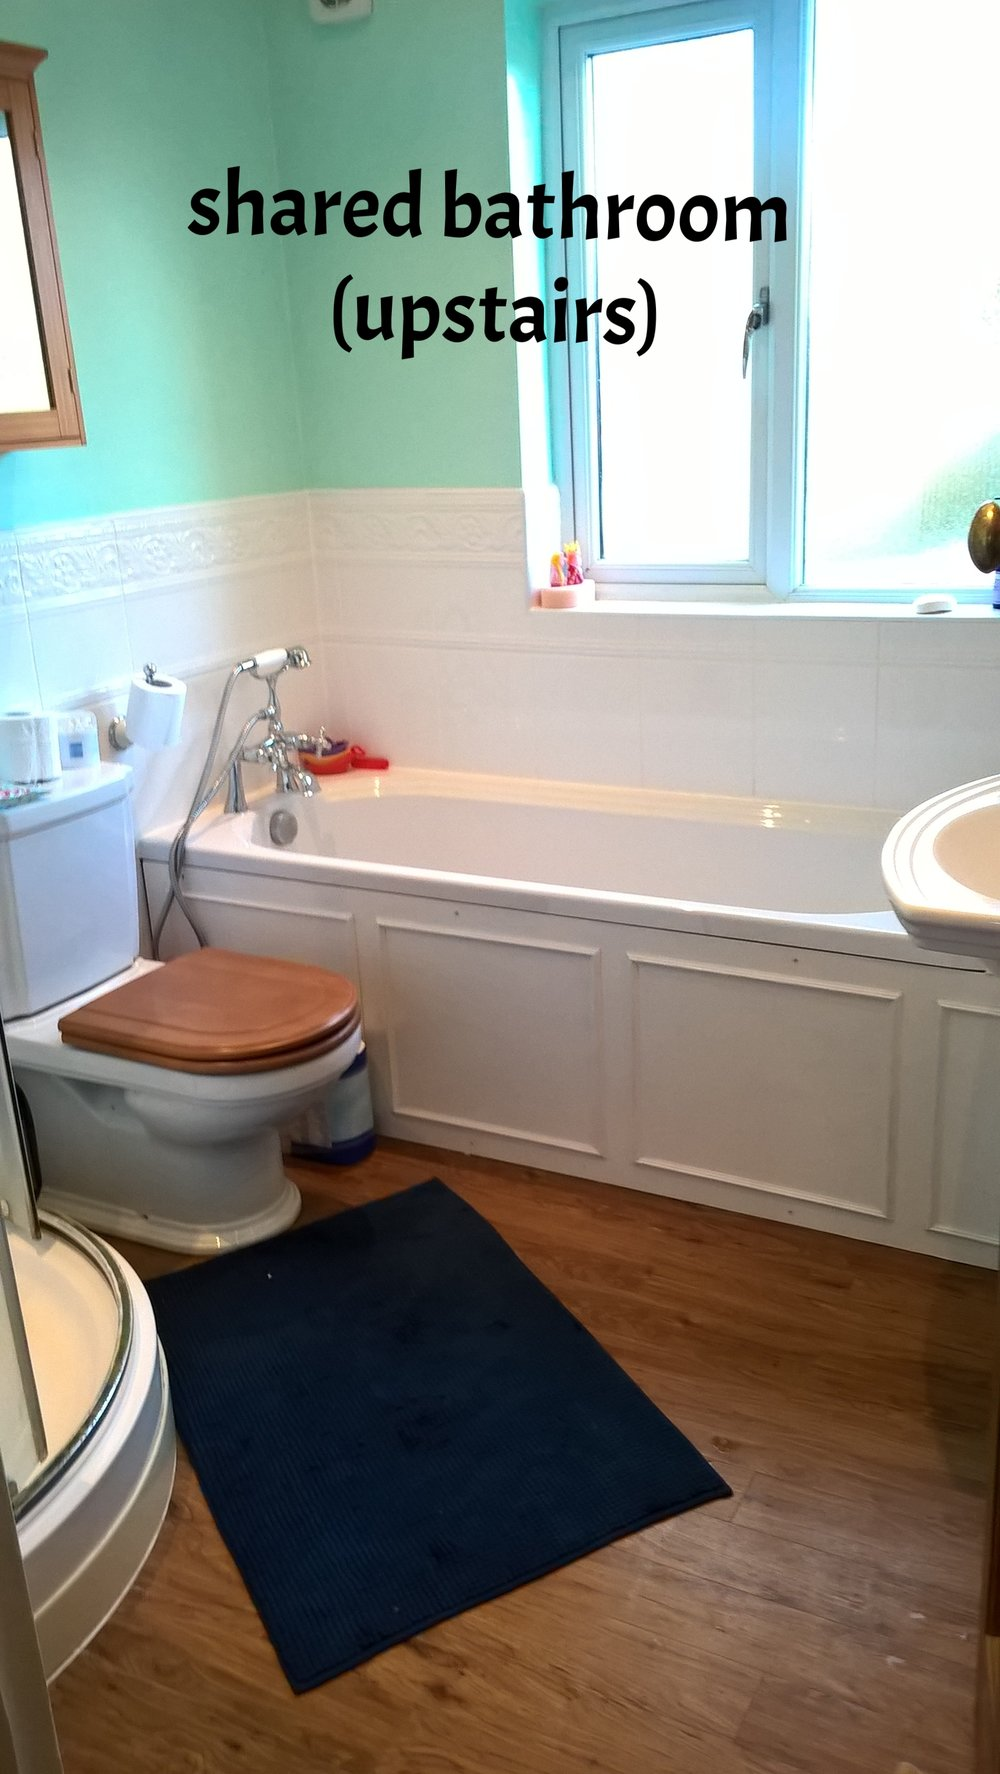 main bathroom upstairs (shared)